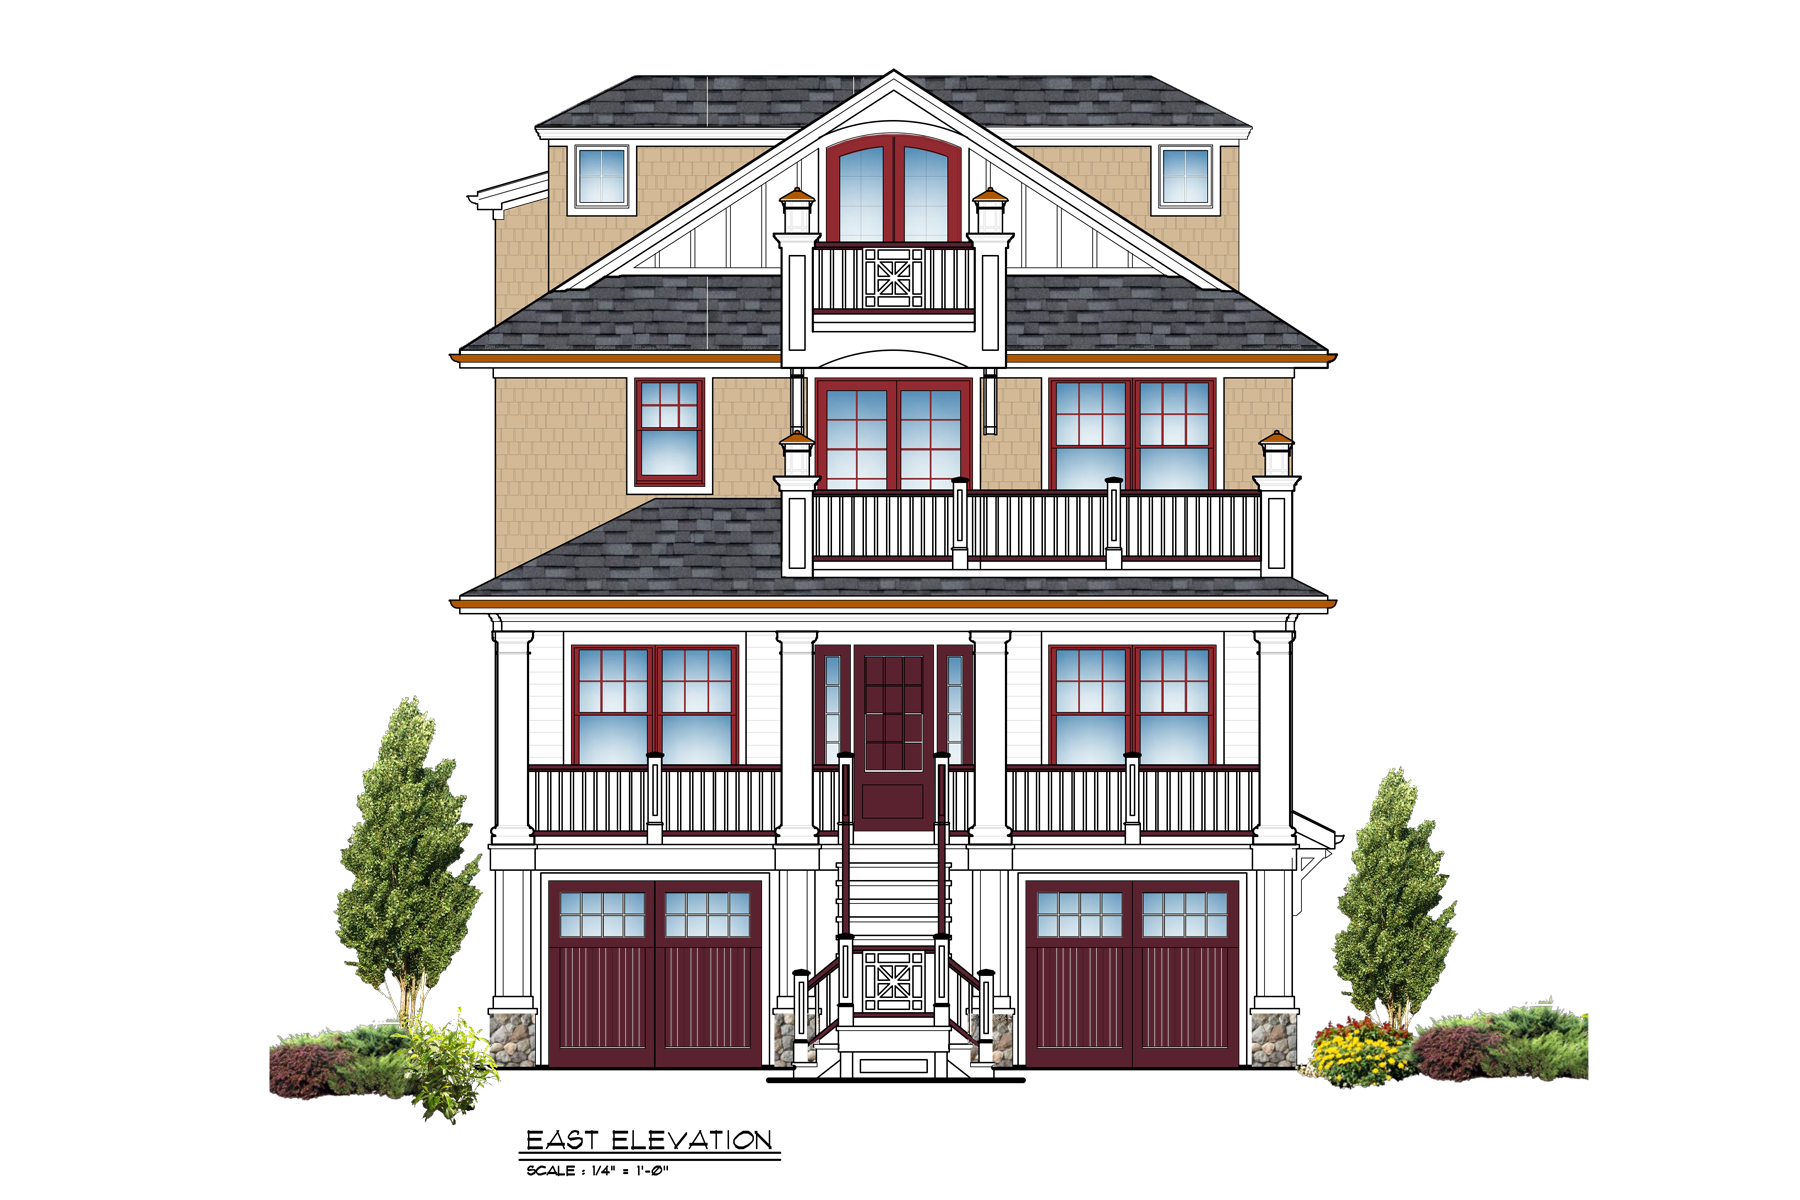 Single Family Home for Sale at Premier Location With Magnificent Ocean Views 519 Sunset Boulevard, Mantoloking, New Jersey 08738 United States